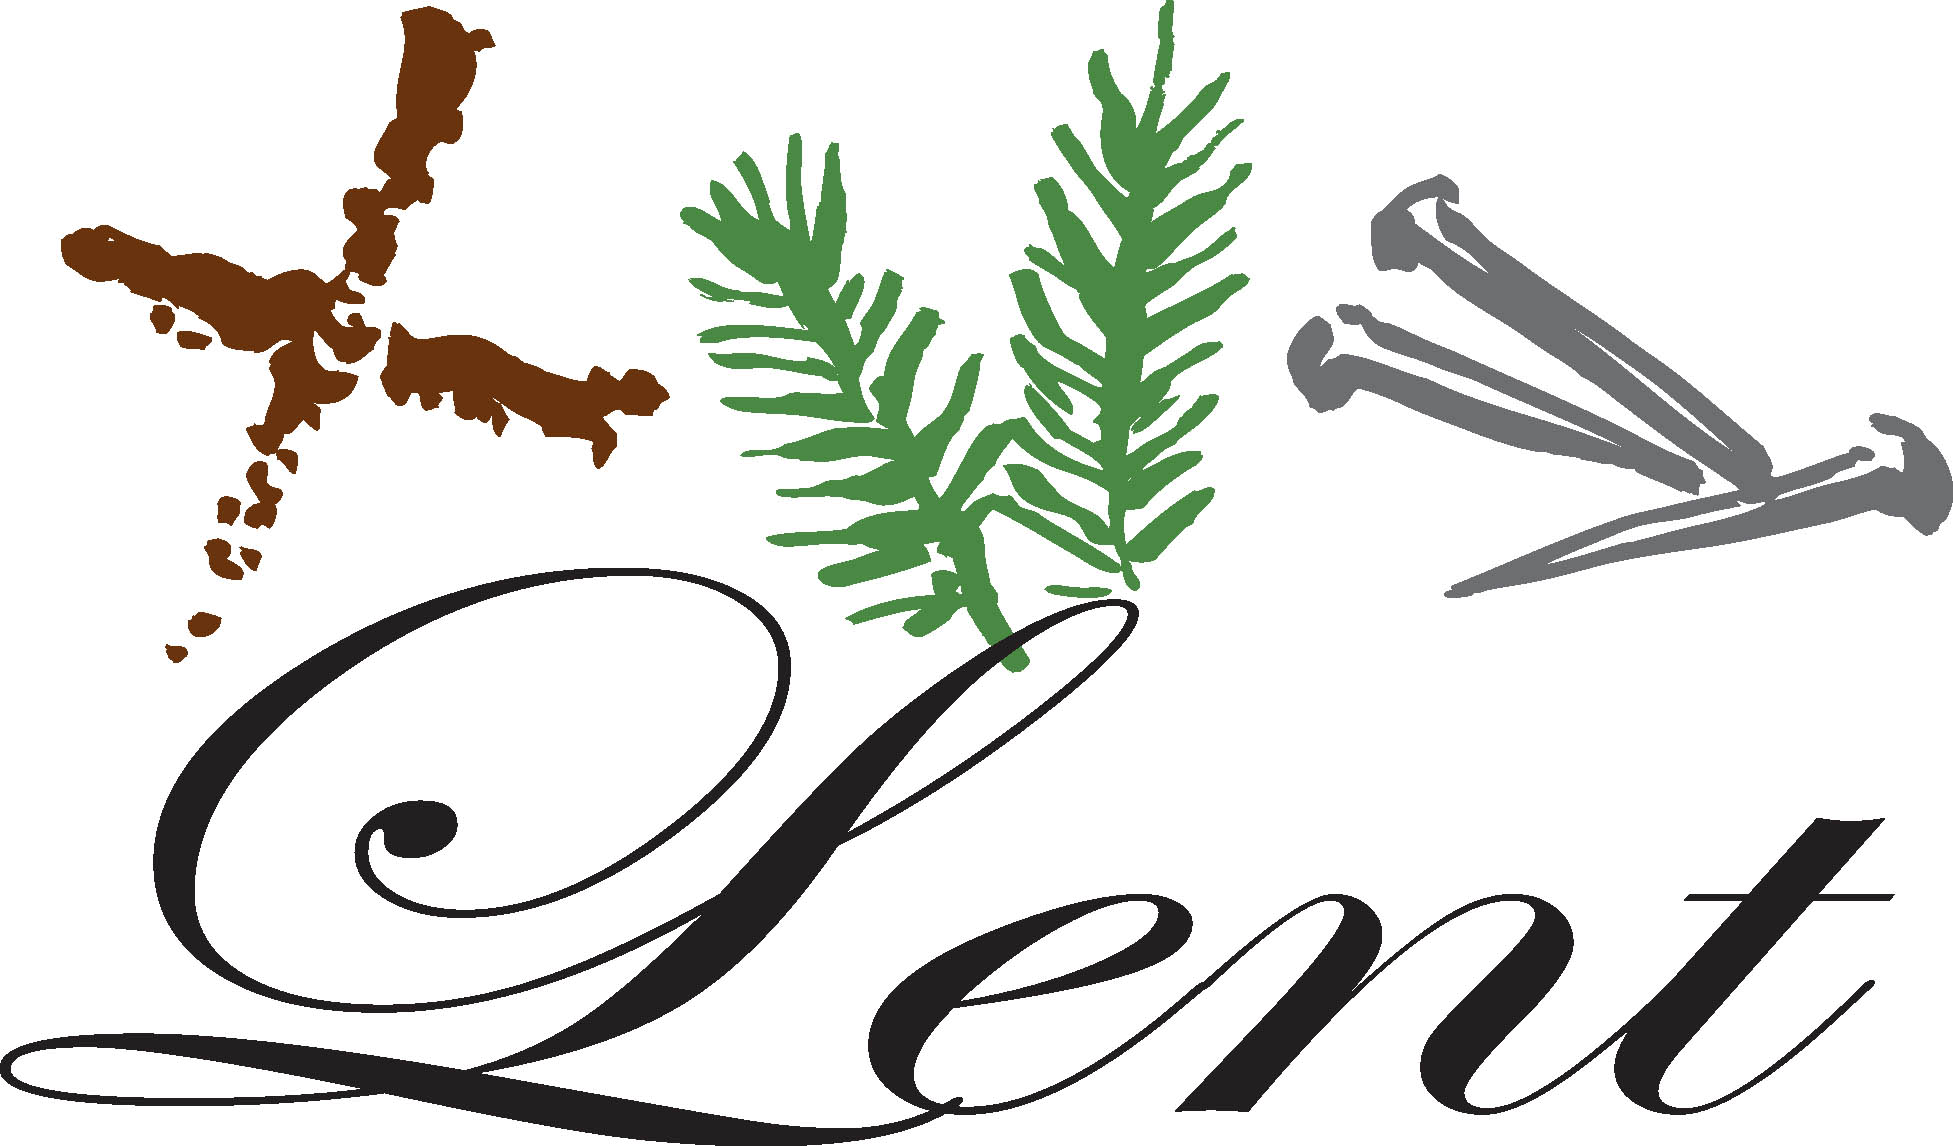 Lent clipart. Lutheran